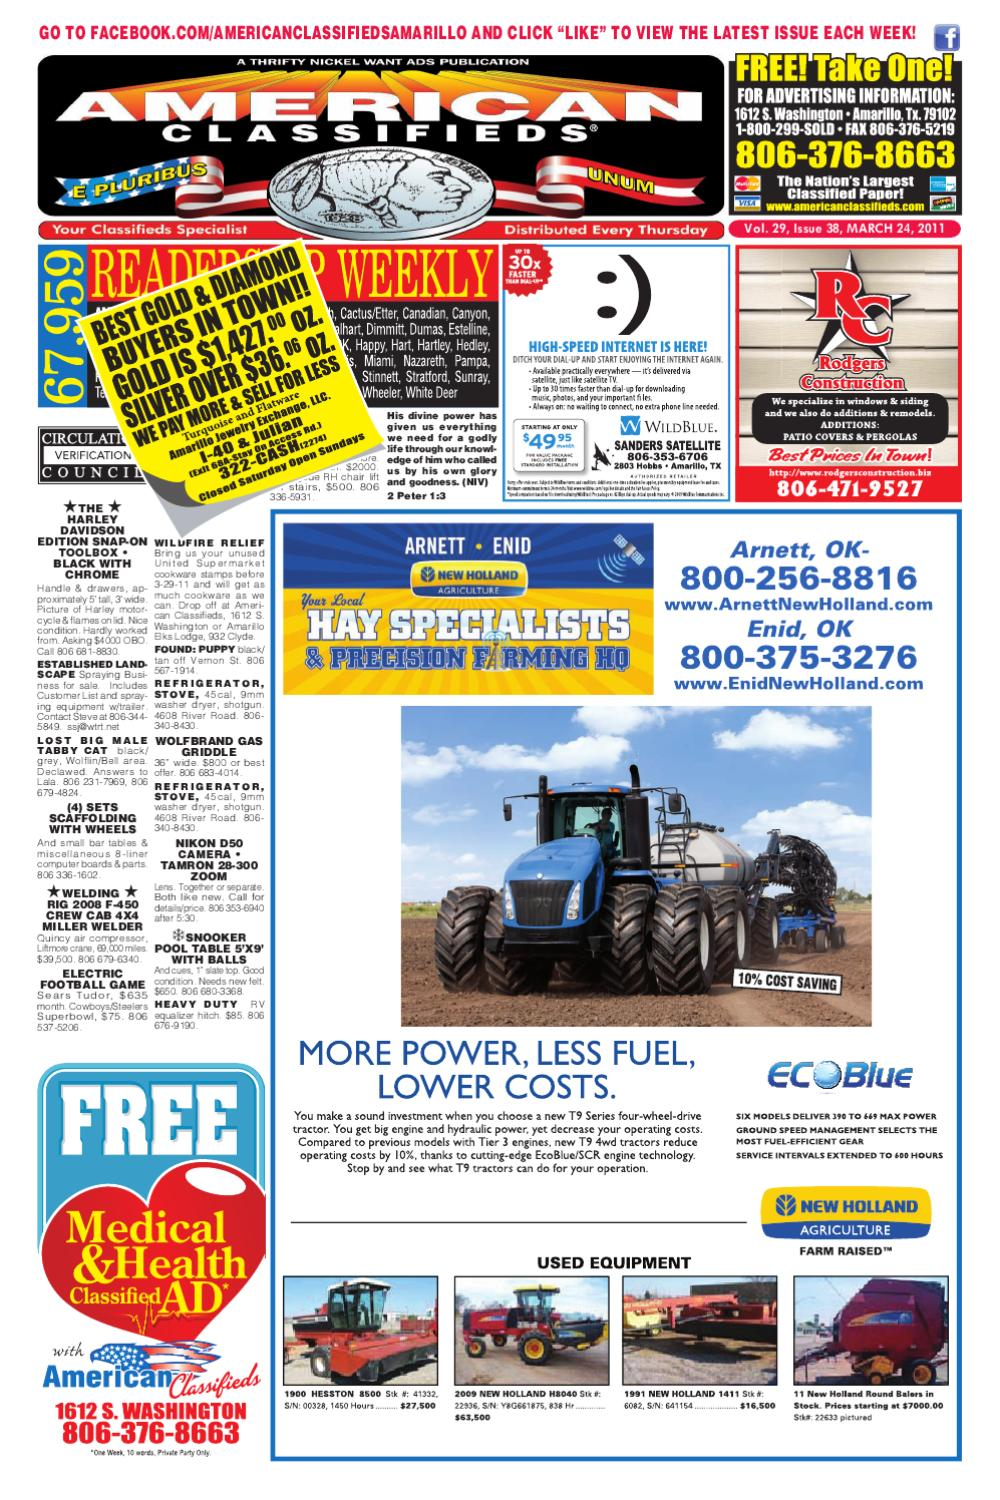 American classifieds amarillo tx march 24 2011 by american classifieds issuu